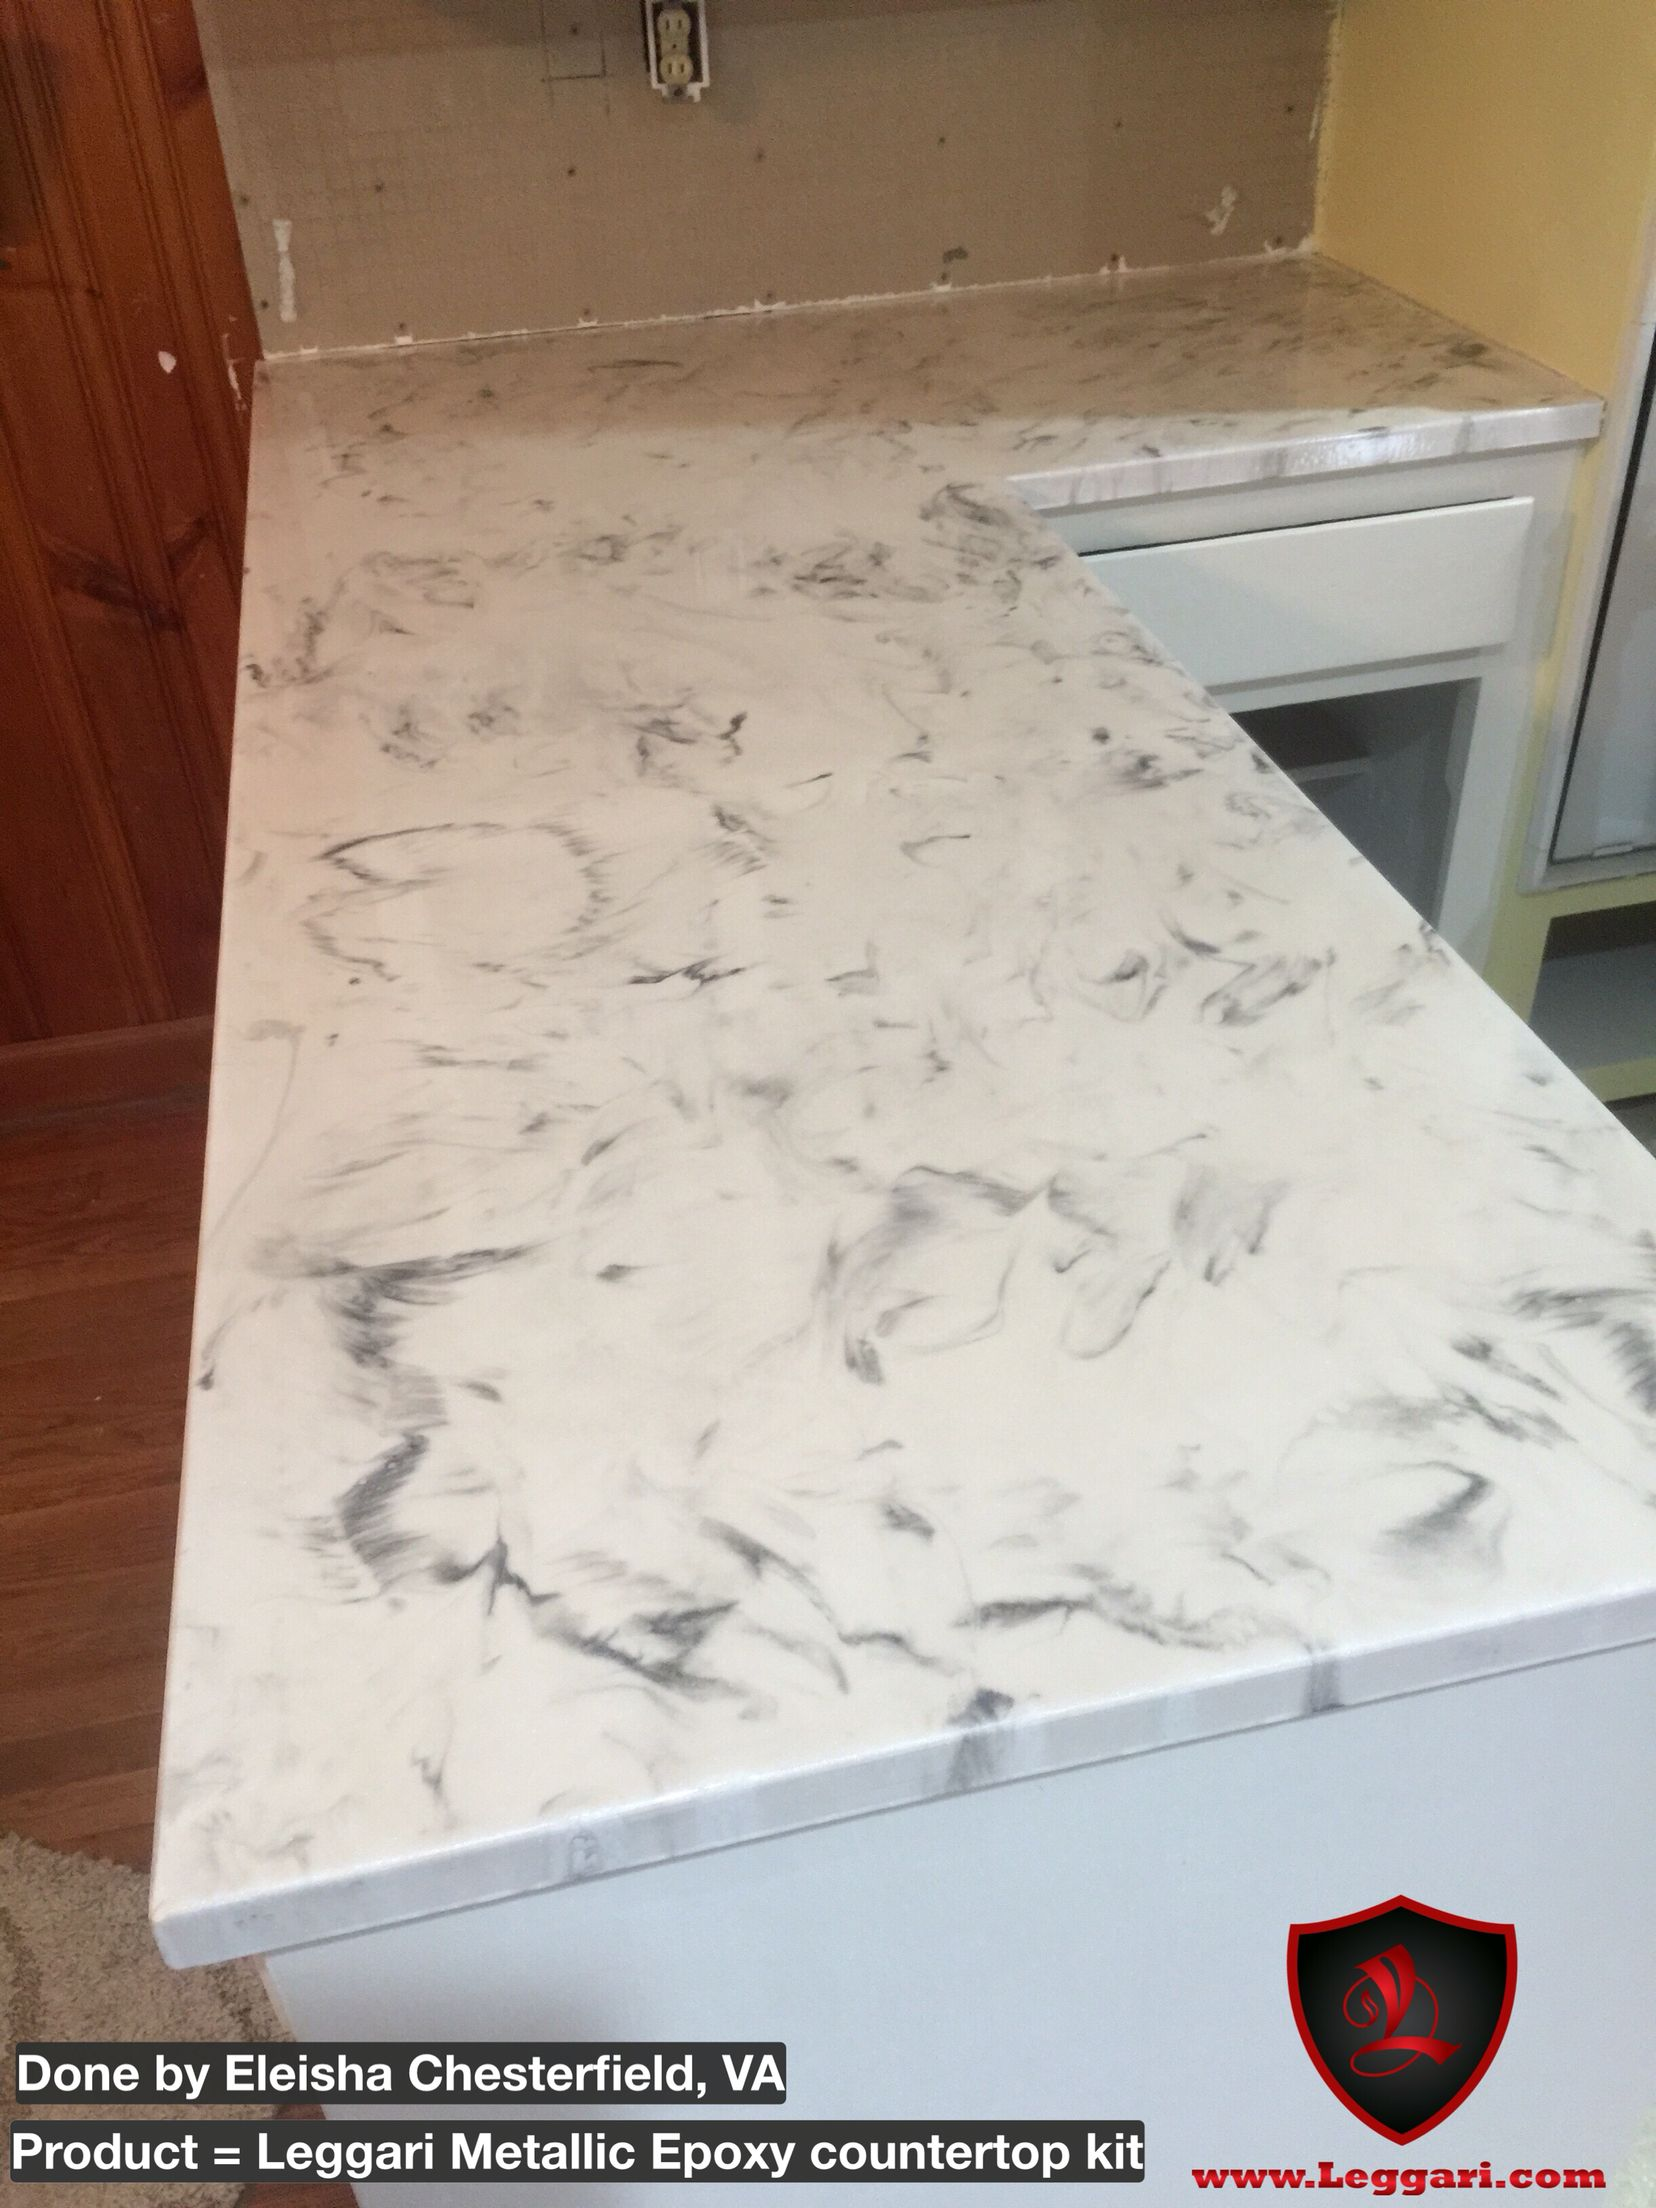 This Countertop Was Coated With A Leggari Products Diy Metallic Epoxy Countertop Resurfacing Kit The Kits Start At 332 Diy Epoxy Epoxy Countertop Countertops